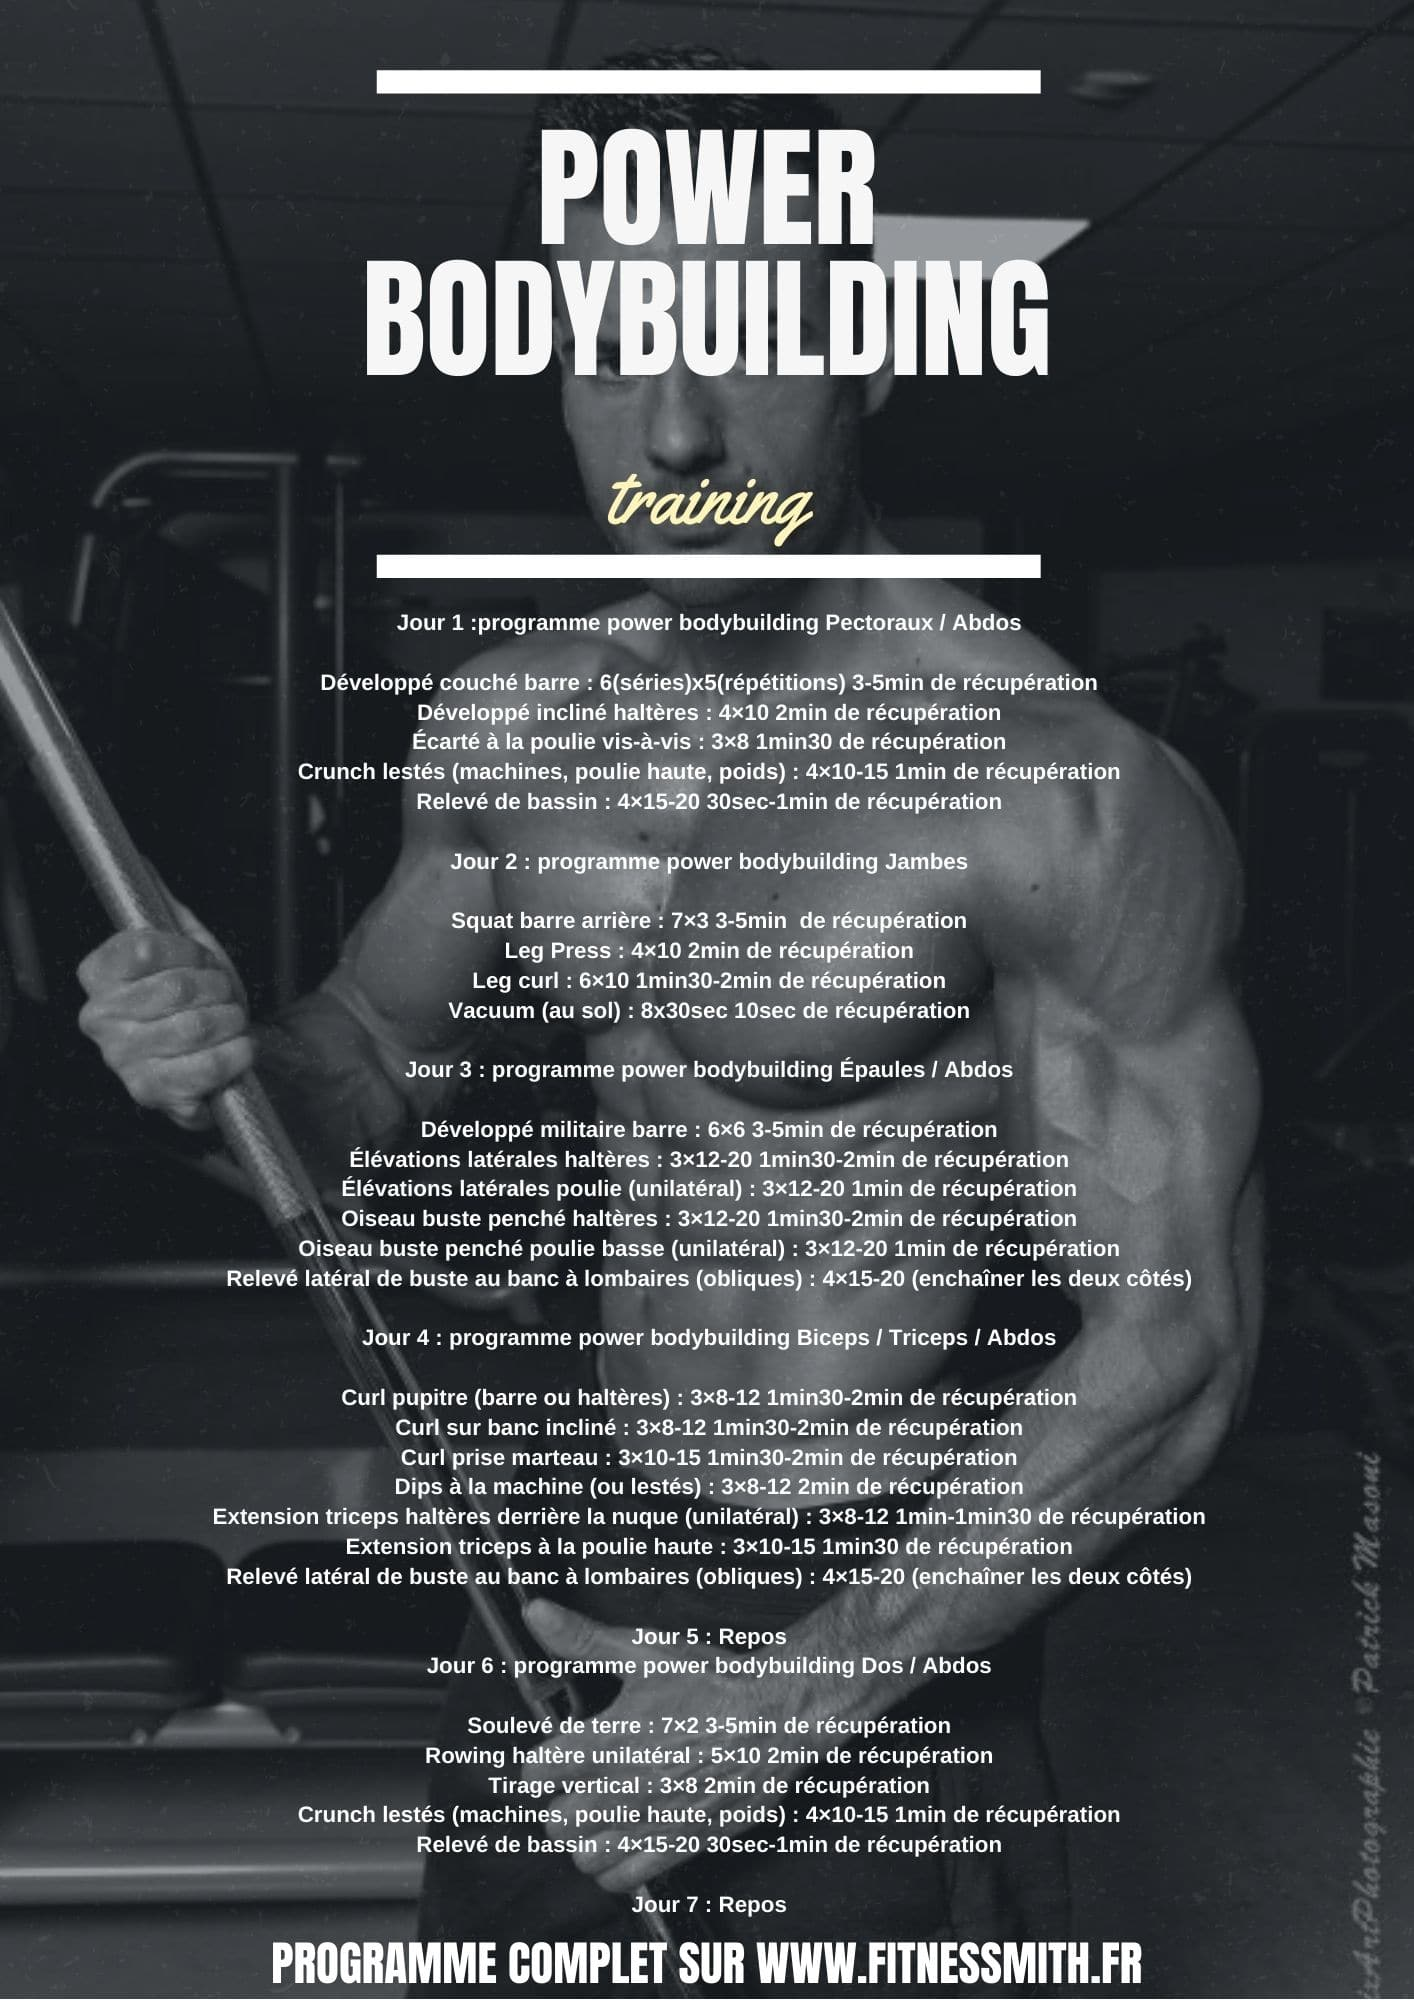 programme power bodybuilding training